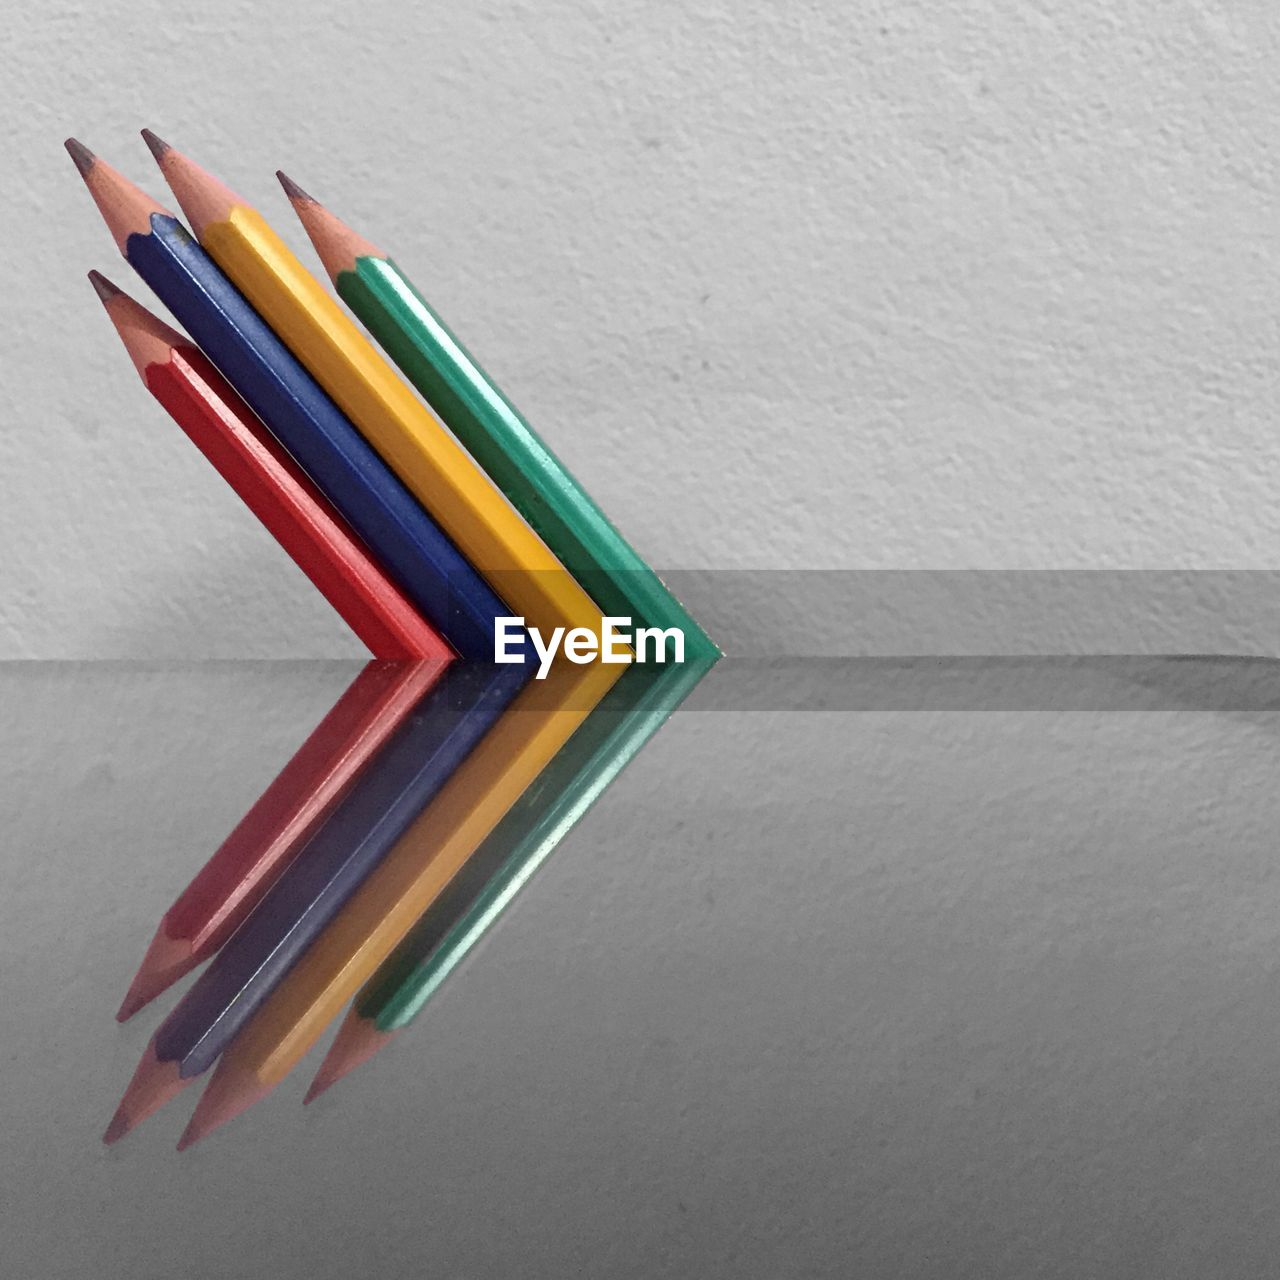 HIGH ANGLE VIEW OF COLORFUL PENCILS ON WHITE BACKGROUND